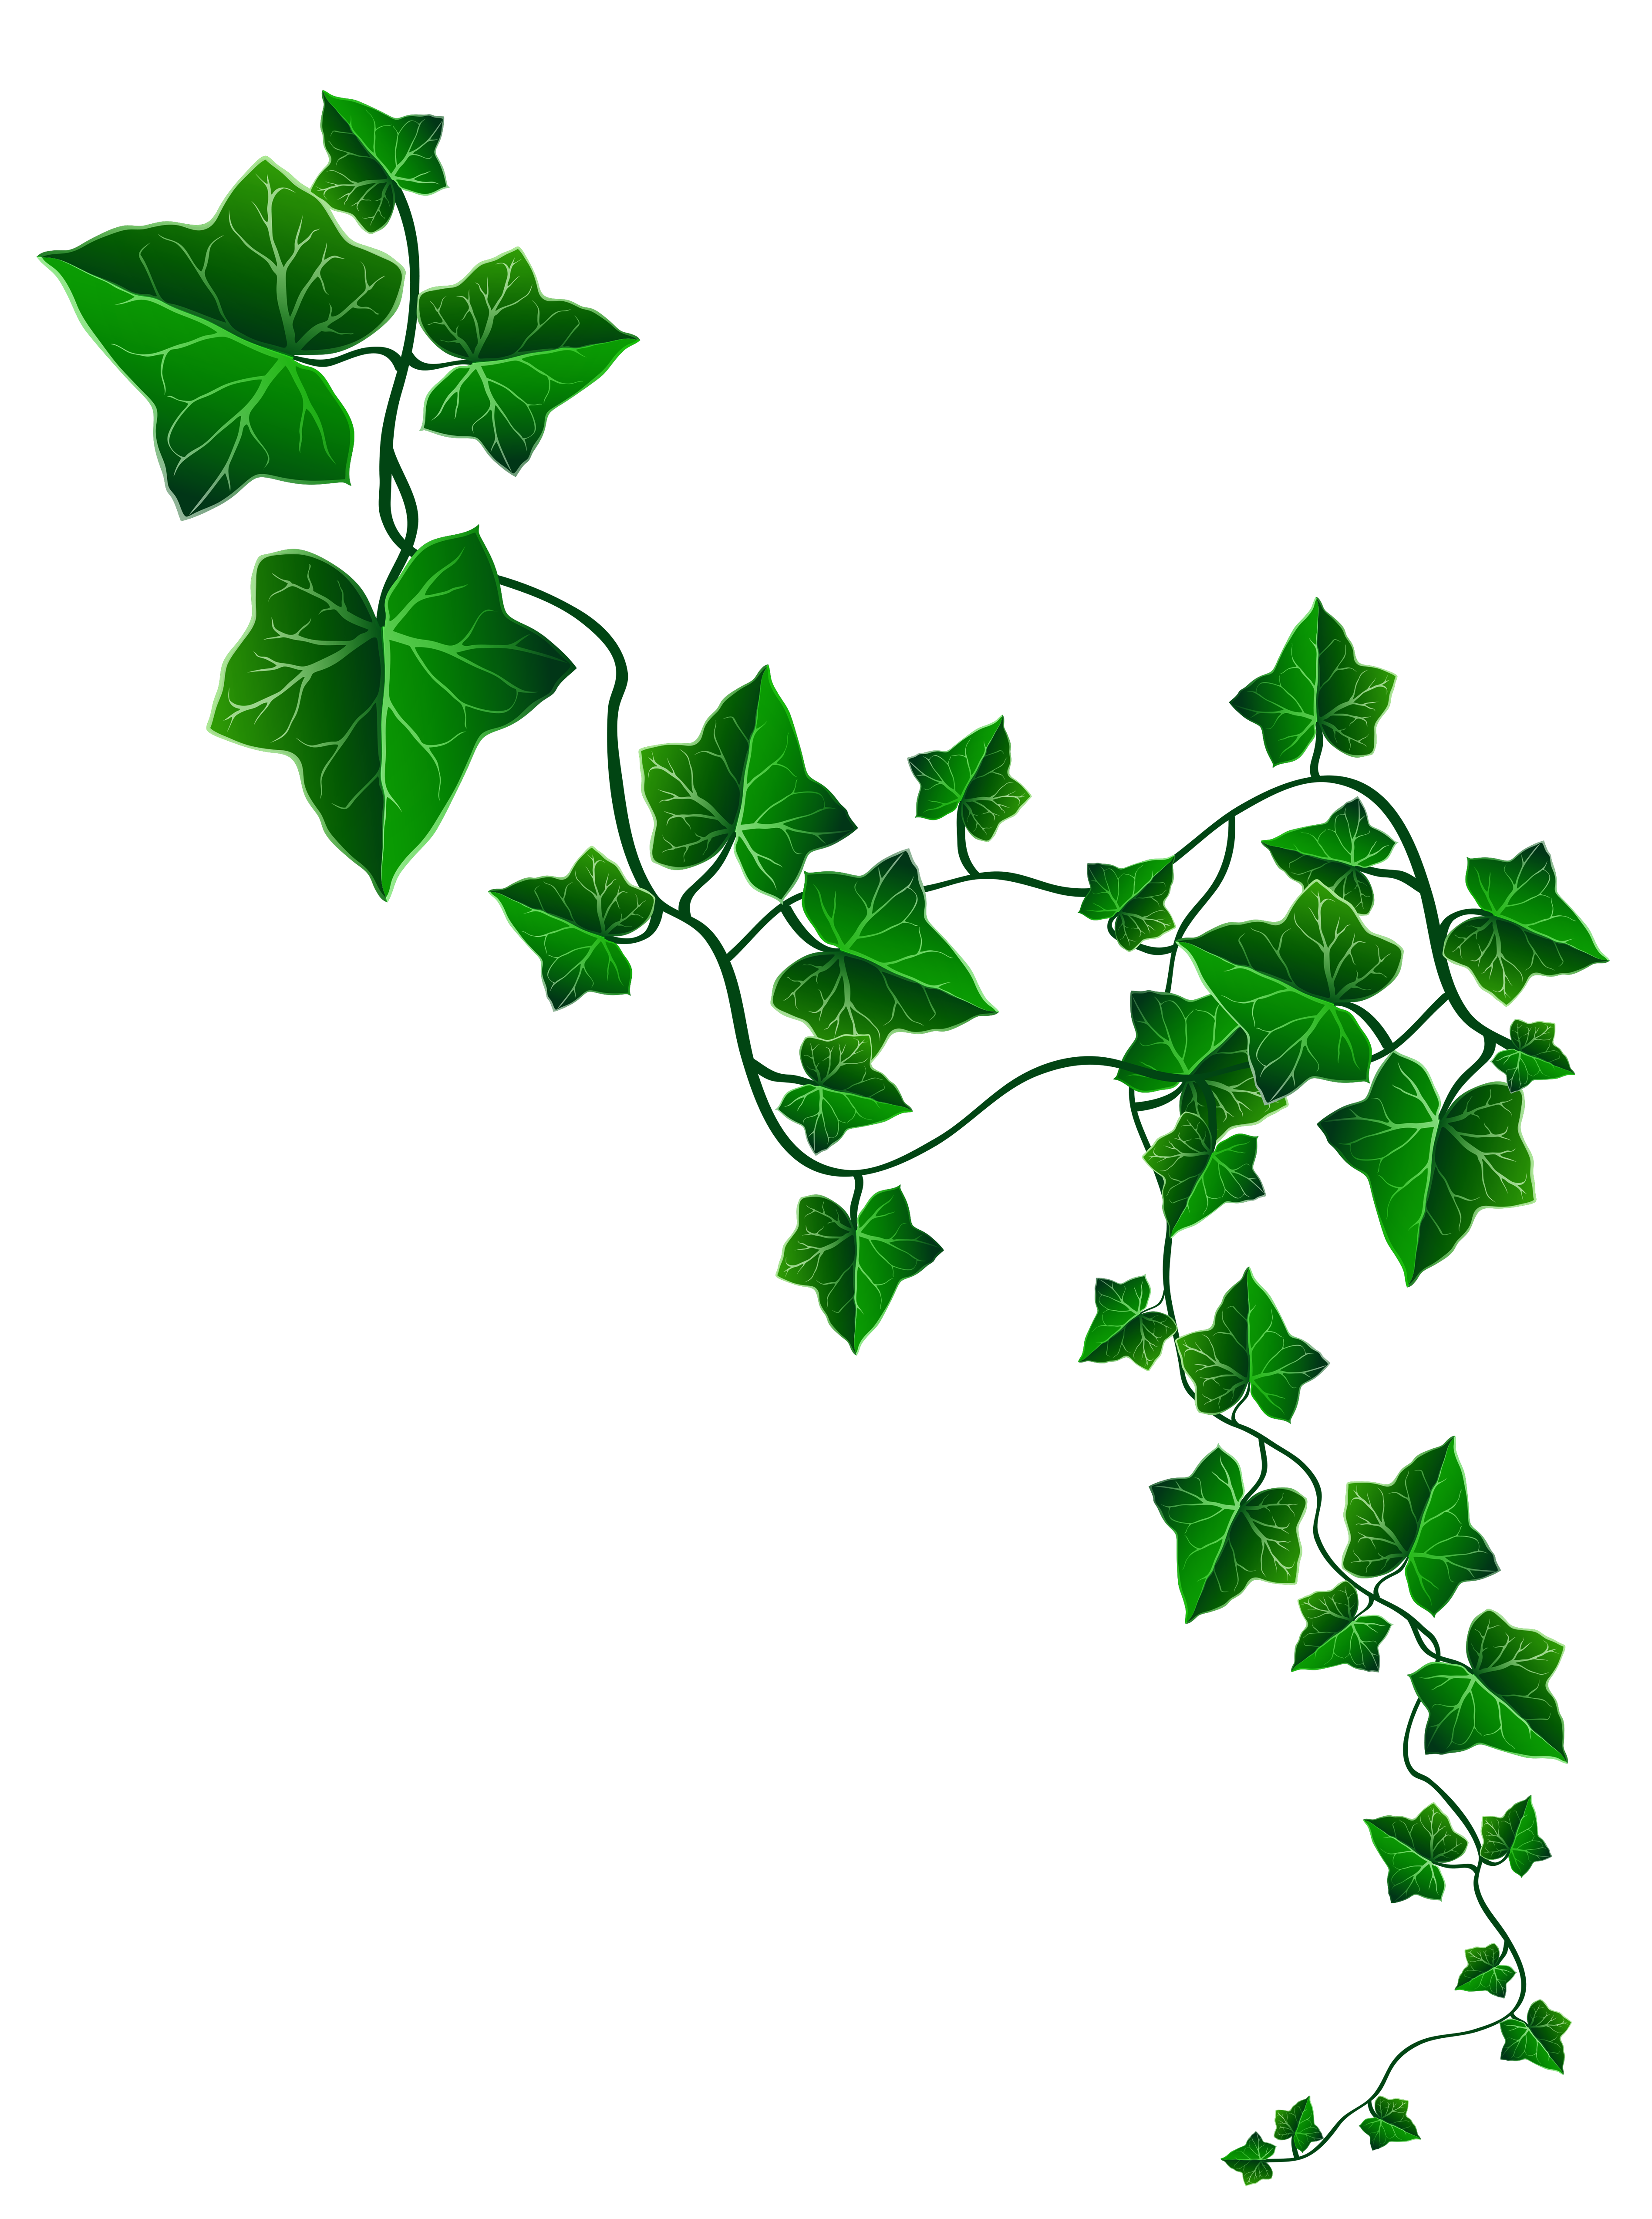 Free vine clip art clipart images gallery for free download.